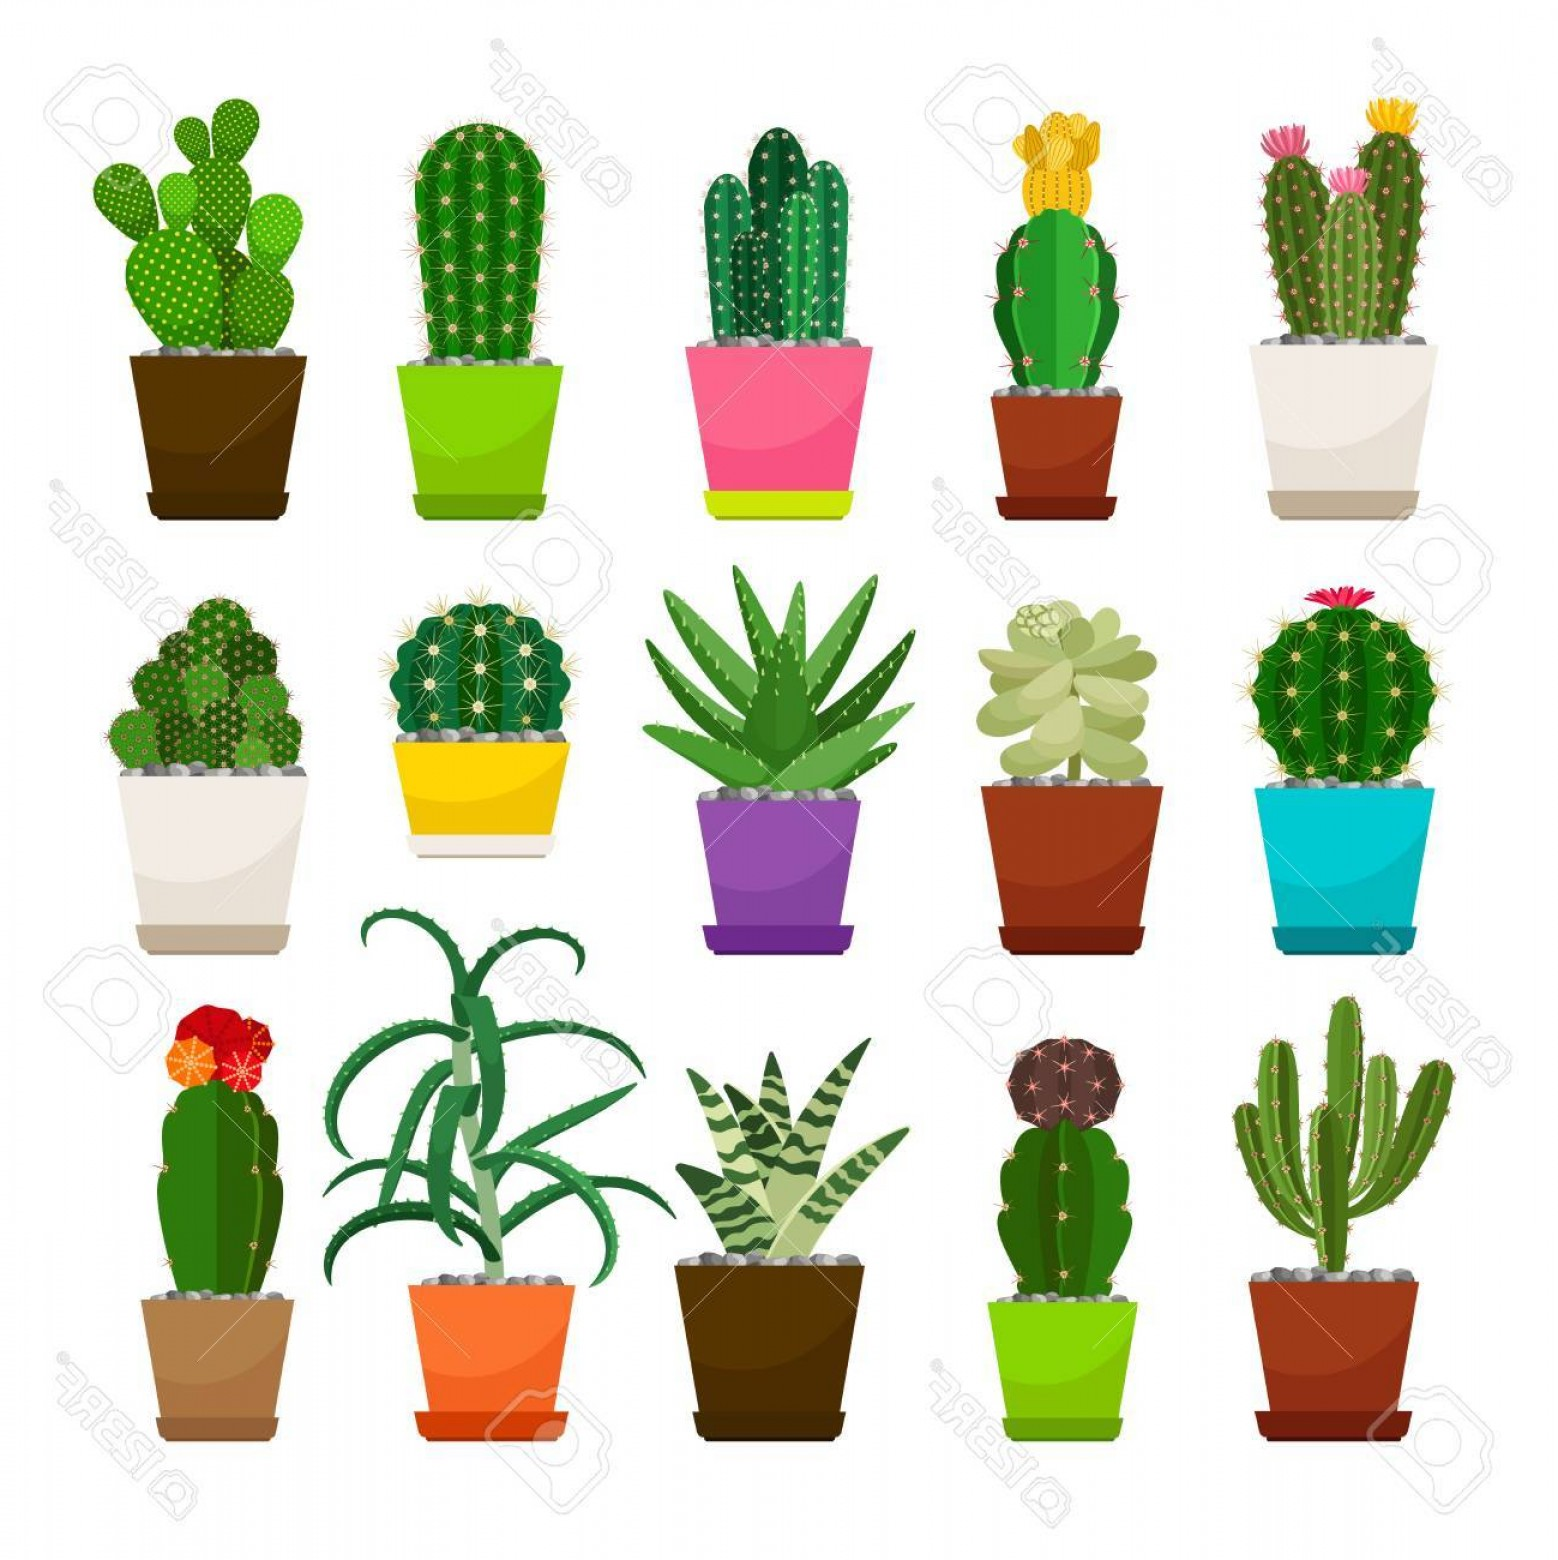 Cactus And Flower Vector: Photostock Vector Set Of Cactus Houseplants In Flower Pots Vector Icons On White Background